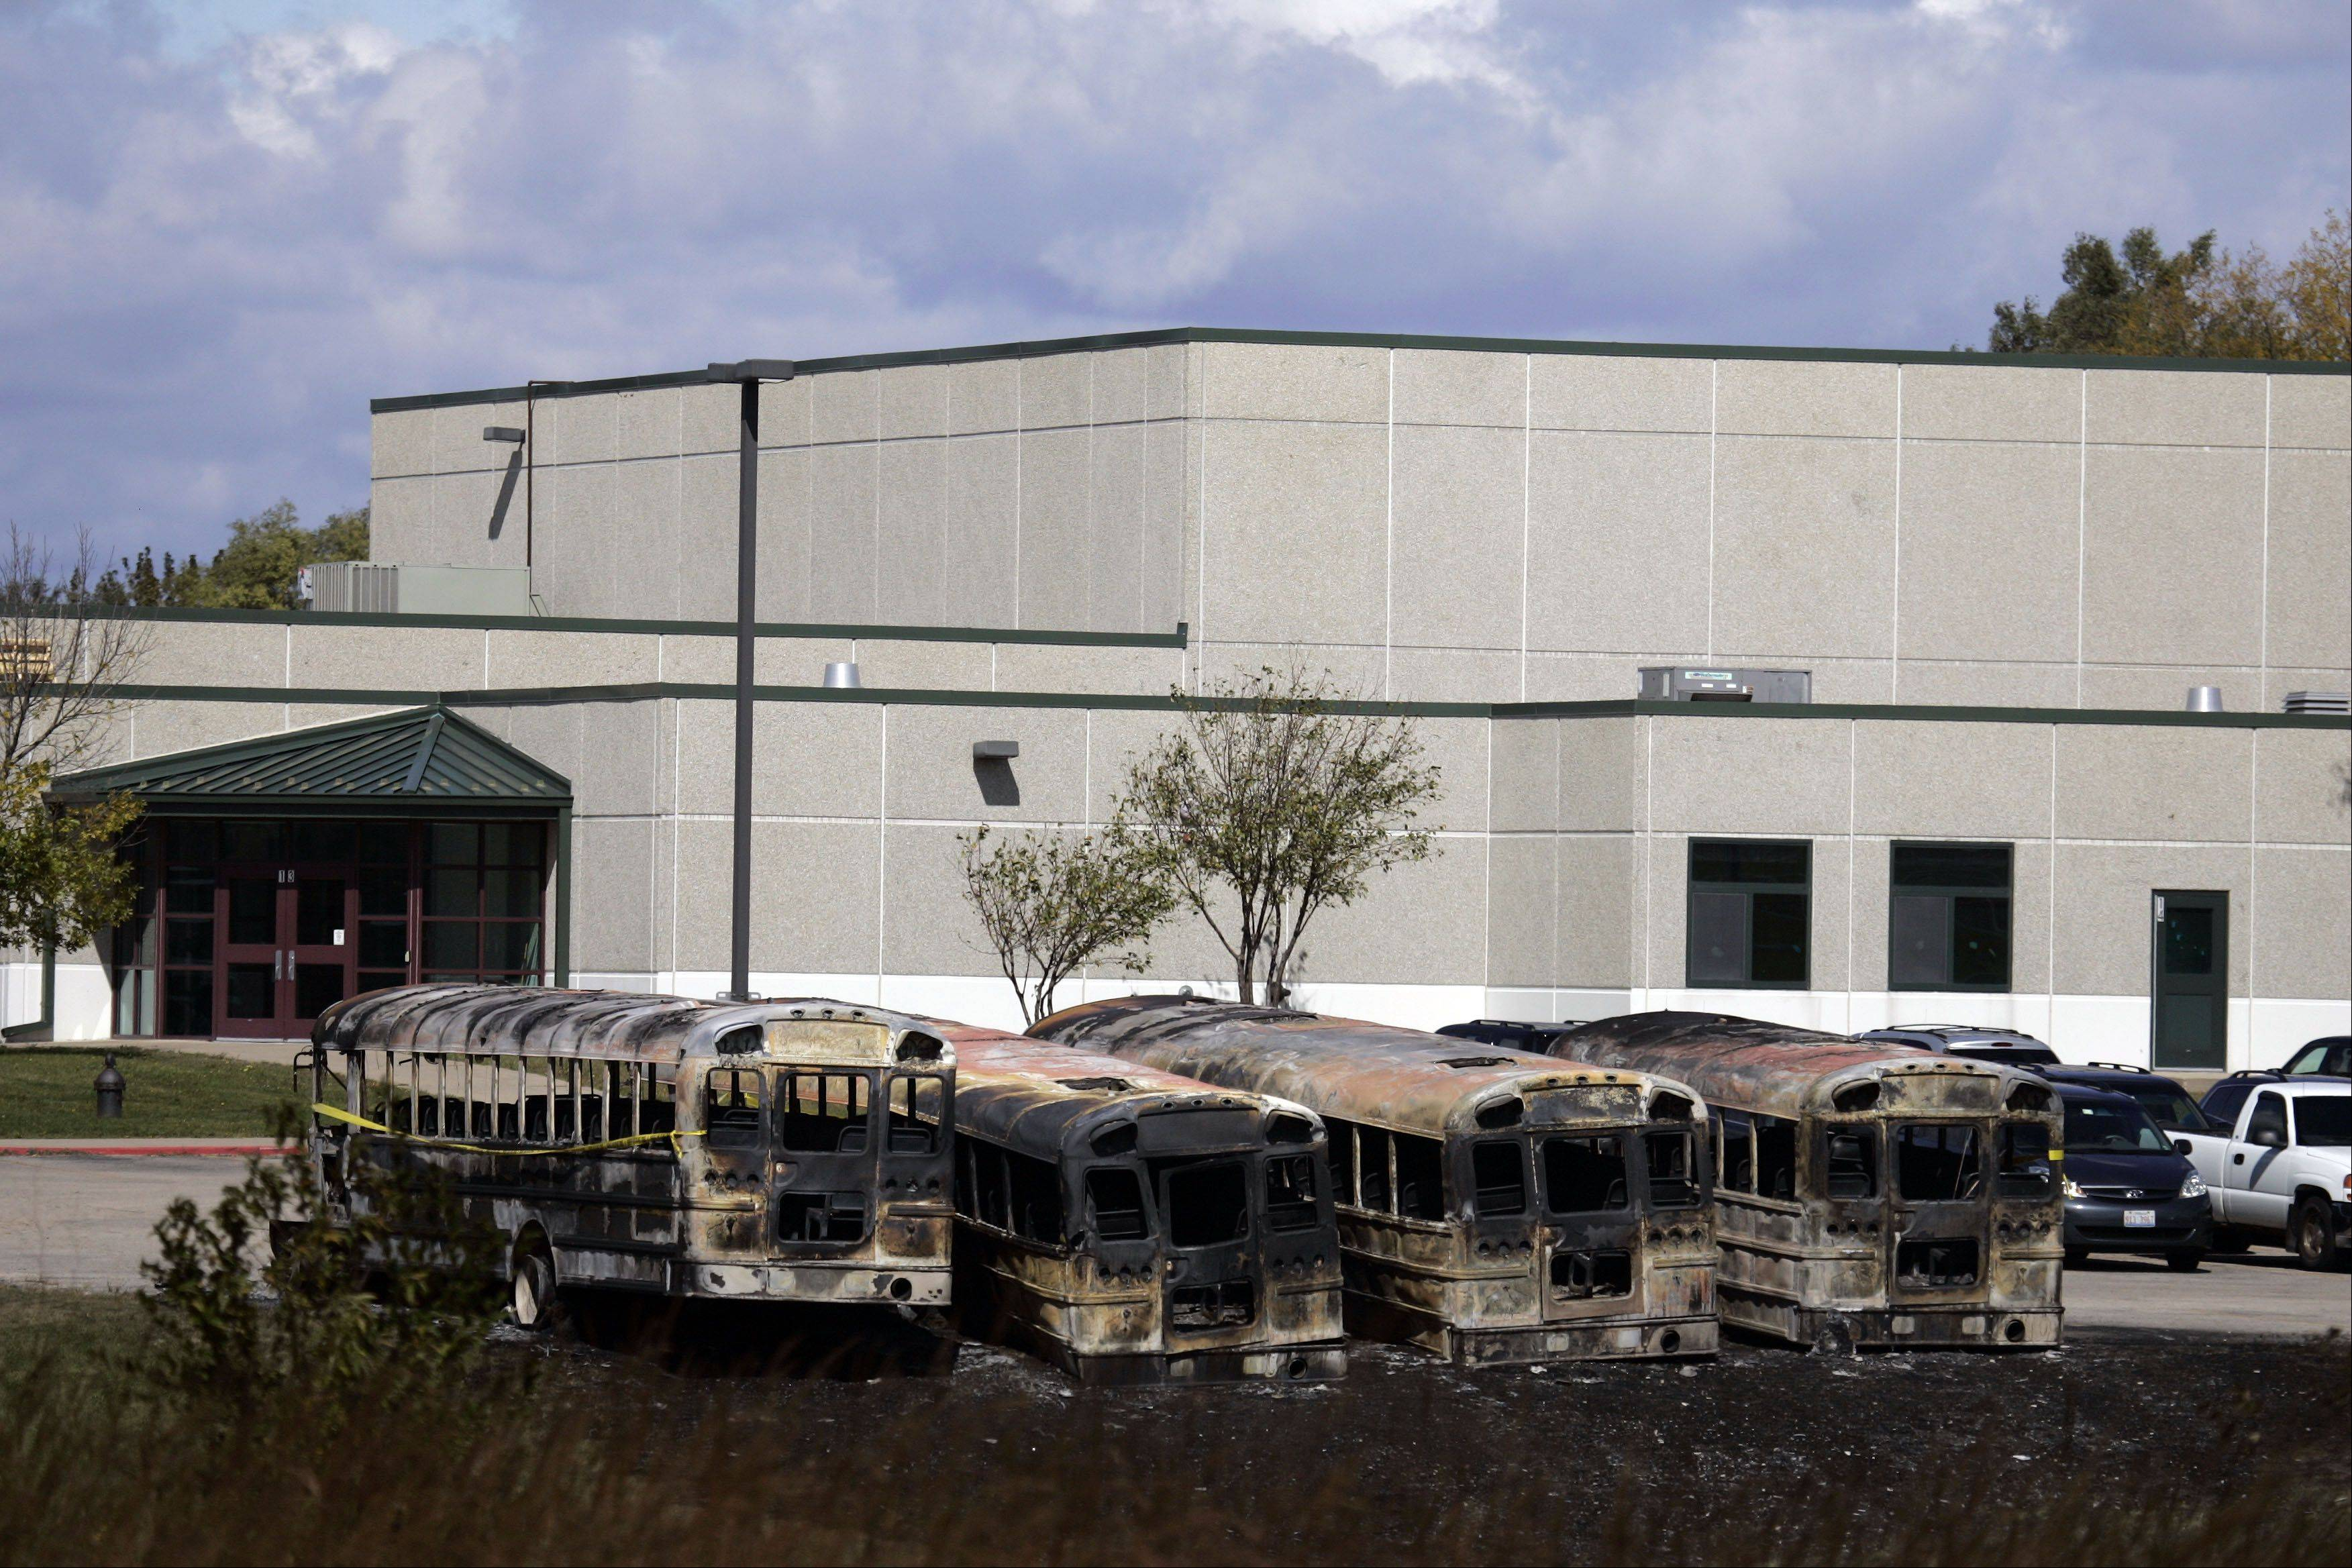 Brian Hill/bhill@dailyherald.comBuses destroyed by fire sit in the parking lot Friday afternoon at Prairie View Grade School on Nesler Road. Foul play is expected, according to the Kane County Sheriff's Department.